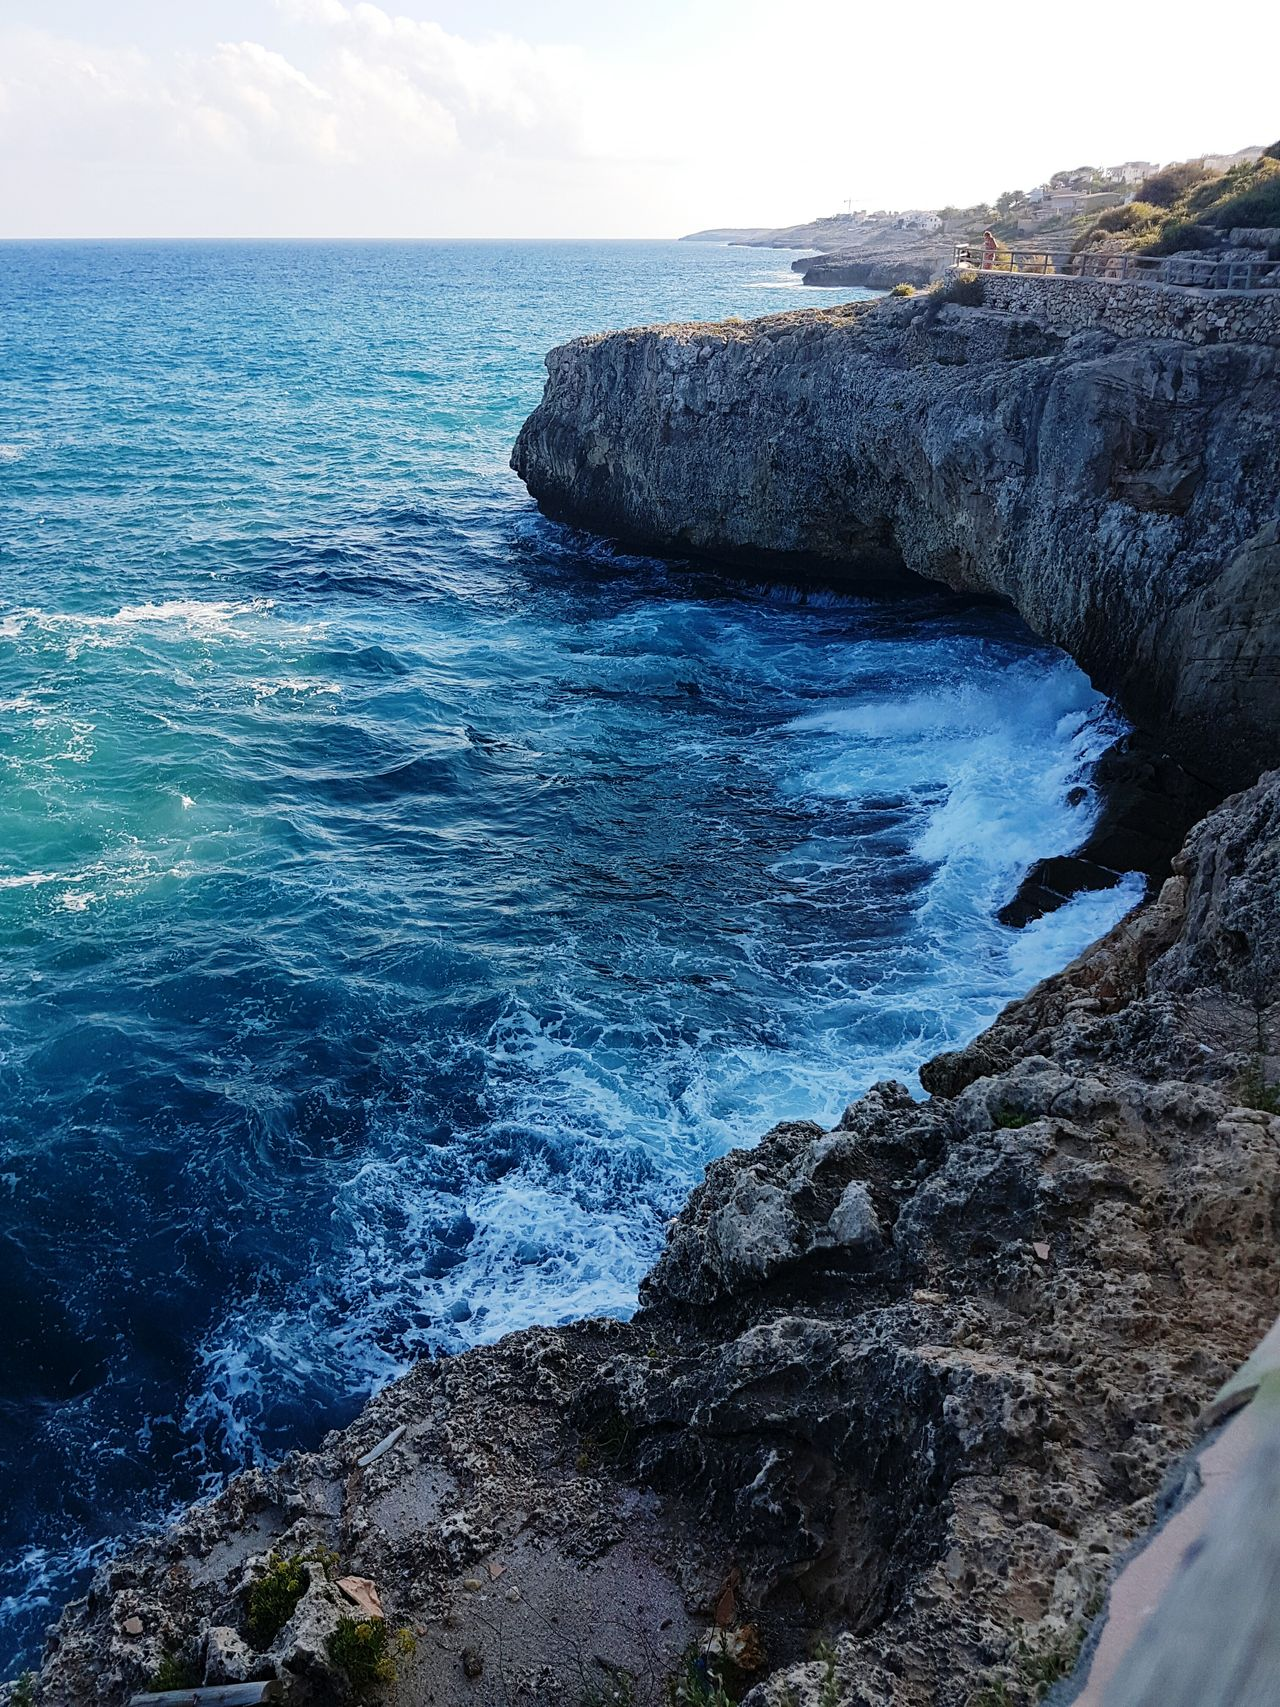 Sea Sky Beauty In Nature Nature Scenics Water Outdoors Day No People Amazing Nature Cliff Cliffs Looking Down View From Above Splashing Waves Waves On Rocks Shore Shoreline Majorca WOW Blue Sea Seascapes Tranquility Flying High